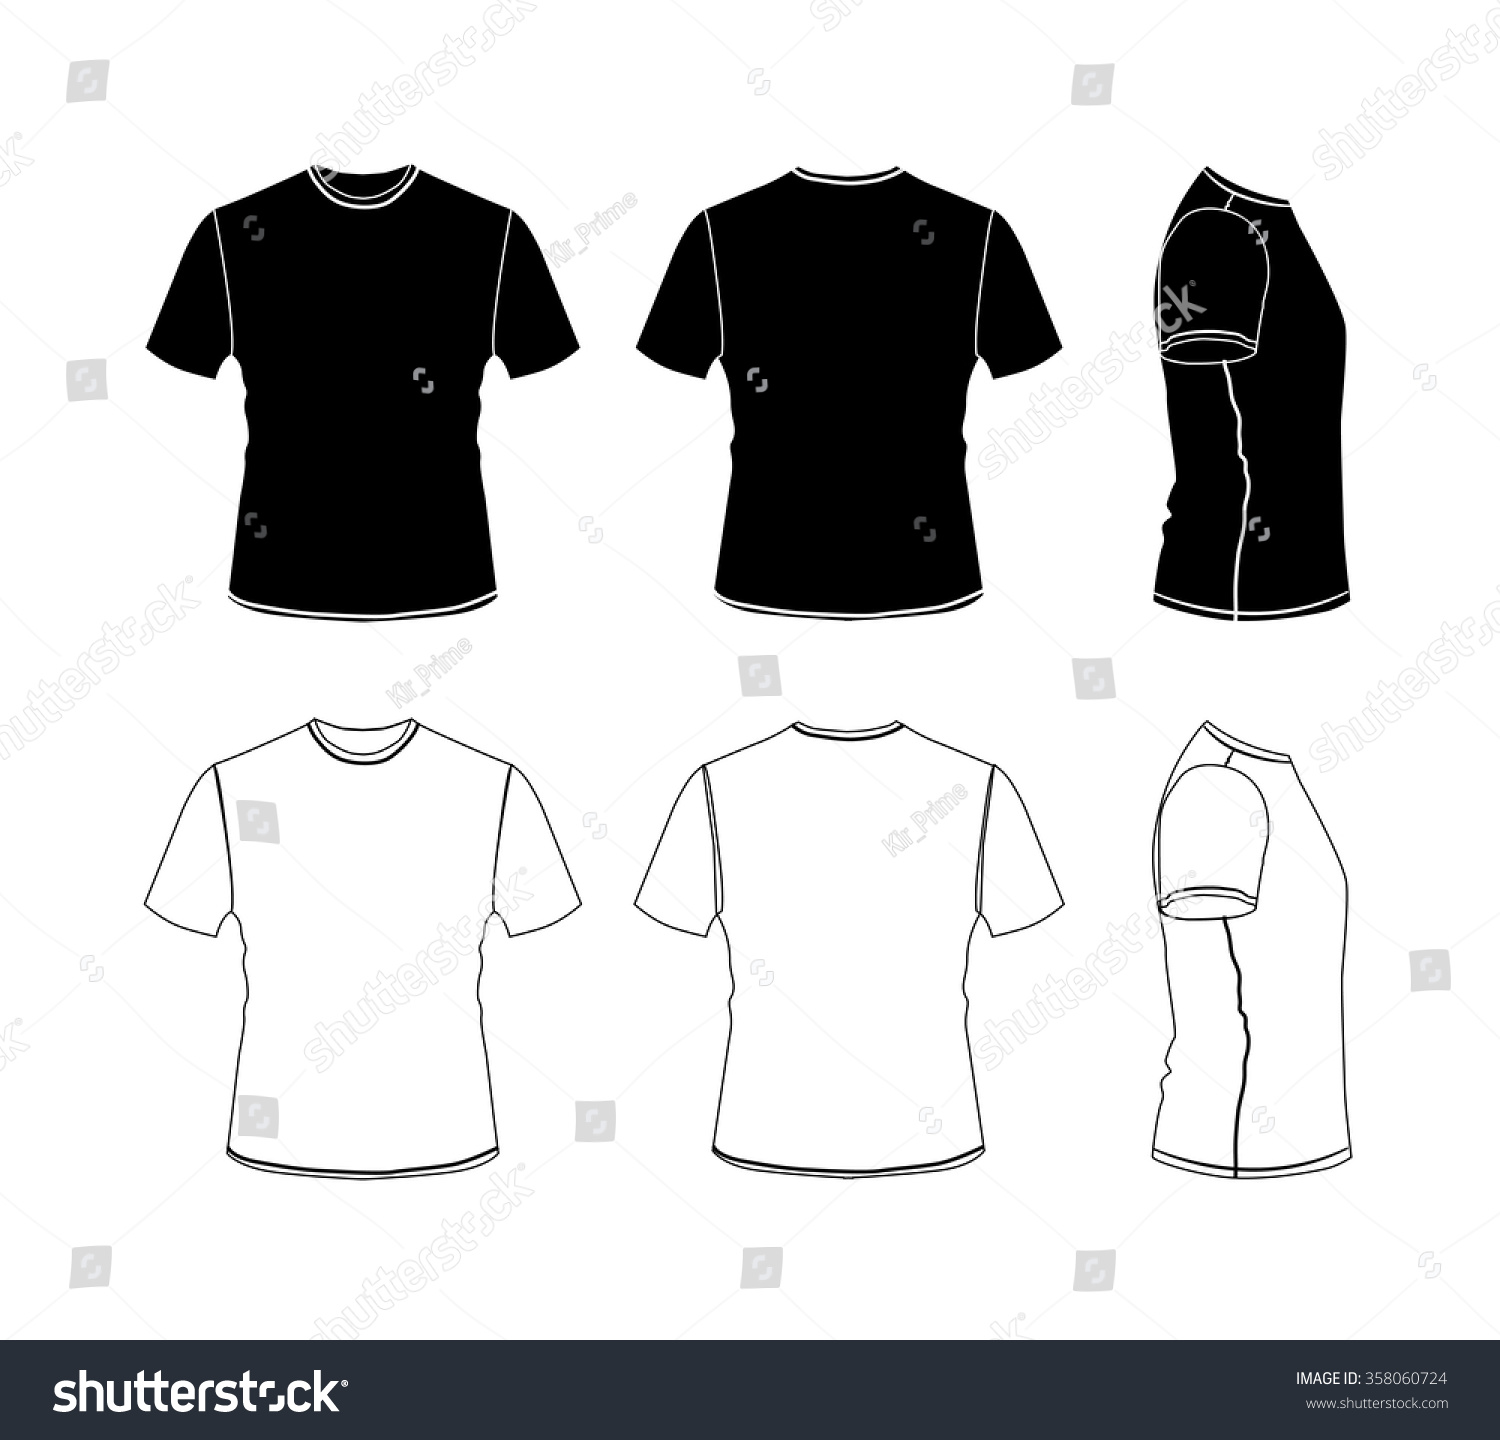 Black t shirt vector front and back - T Shirt Outline Icon Collection Vector Eps10 Silhouette Illustration Isolated On White Background Front Back And Side Views Stock Vector